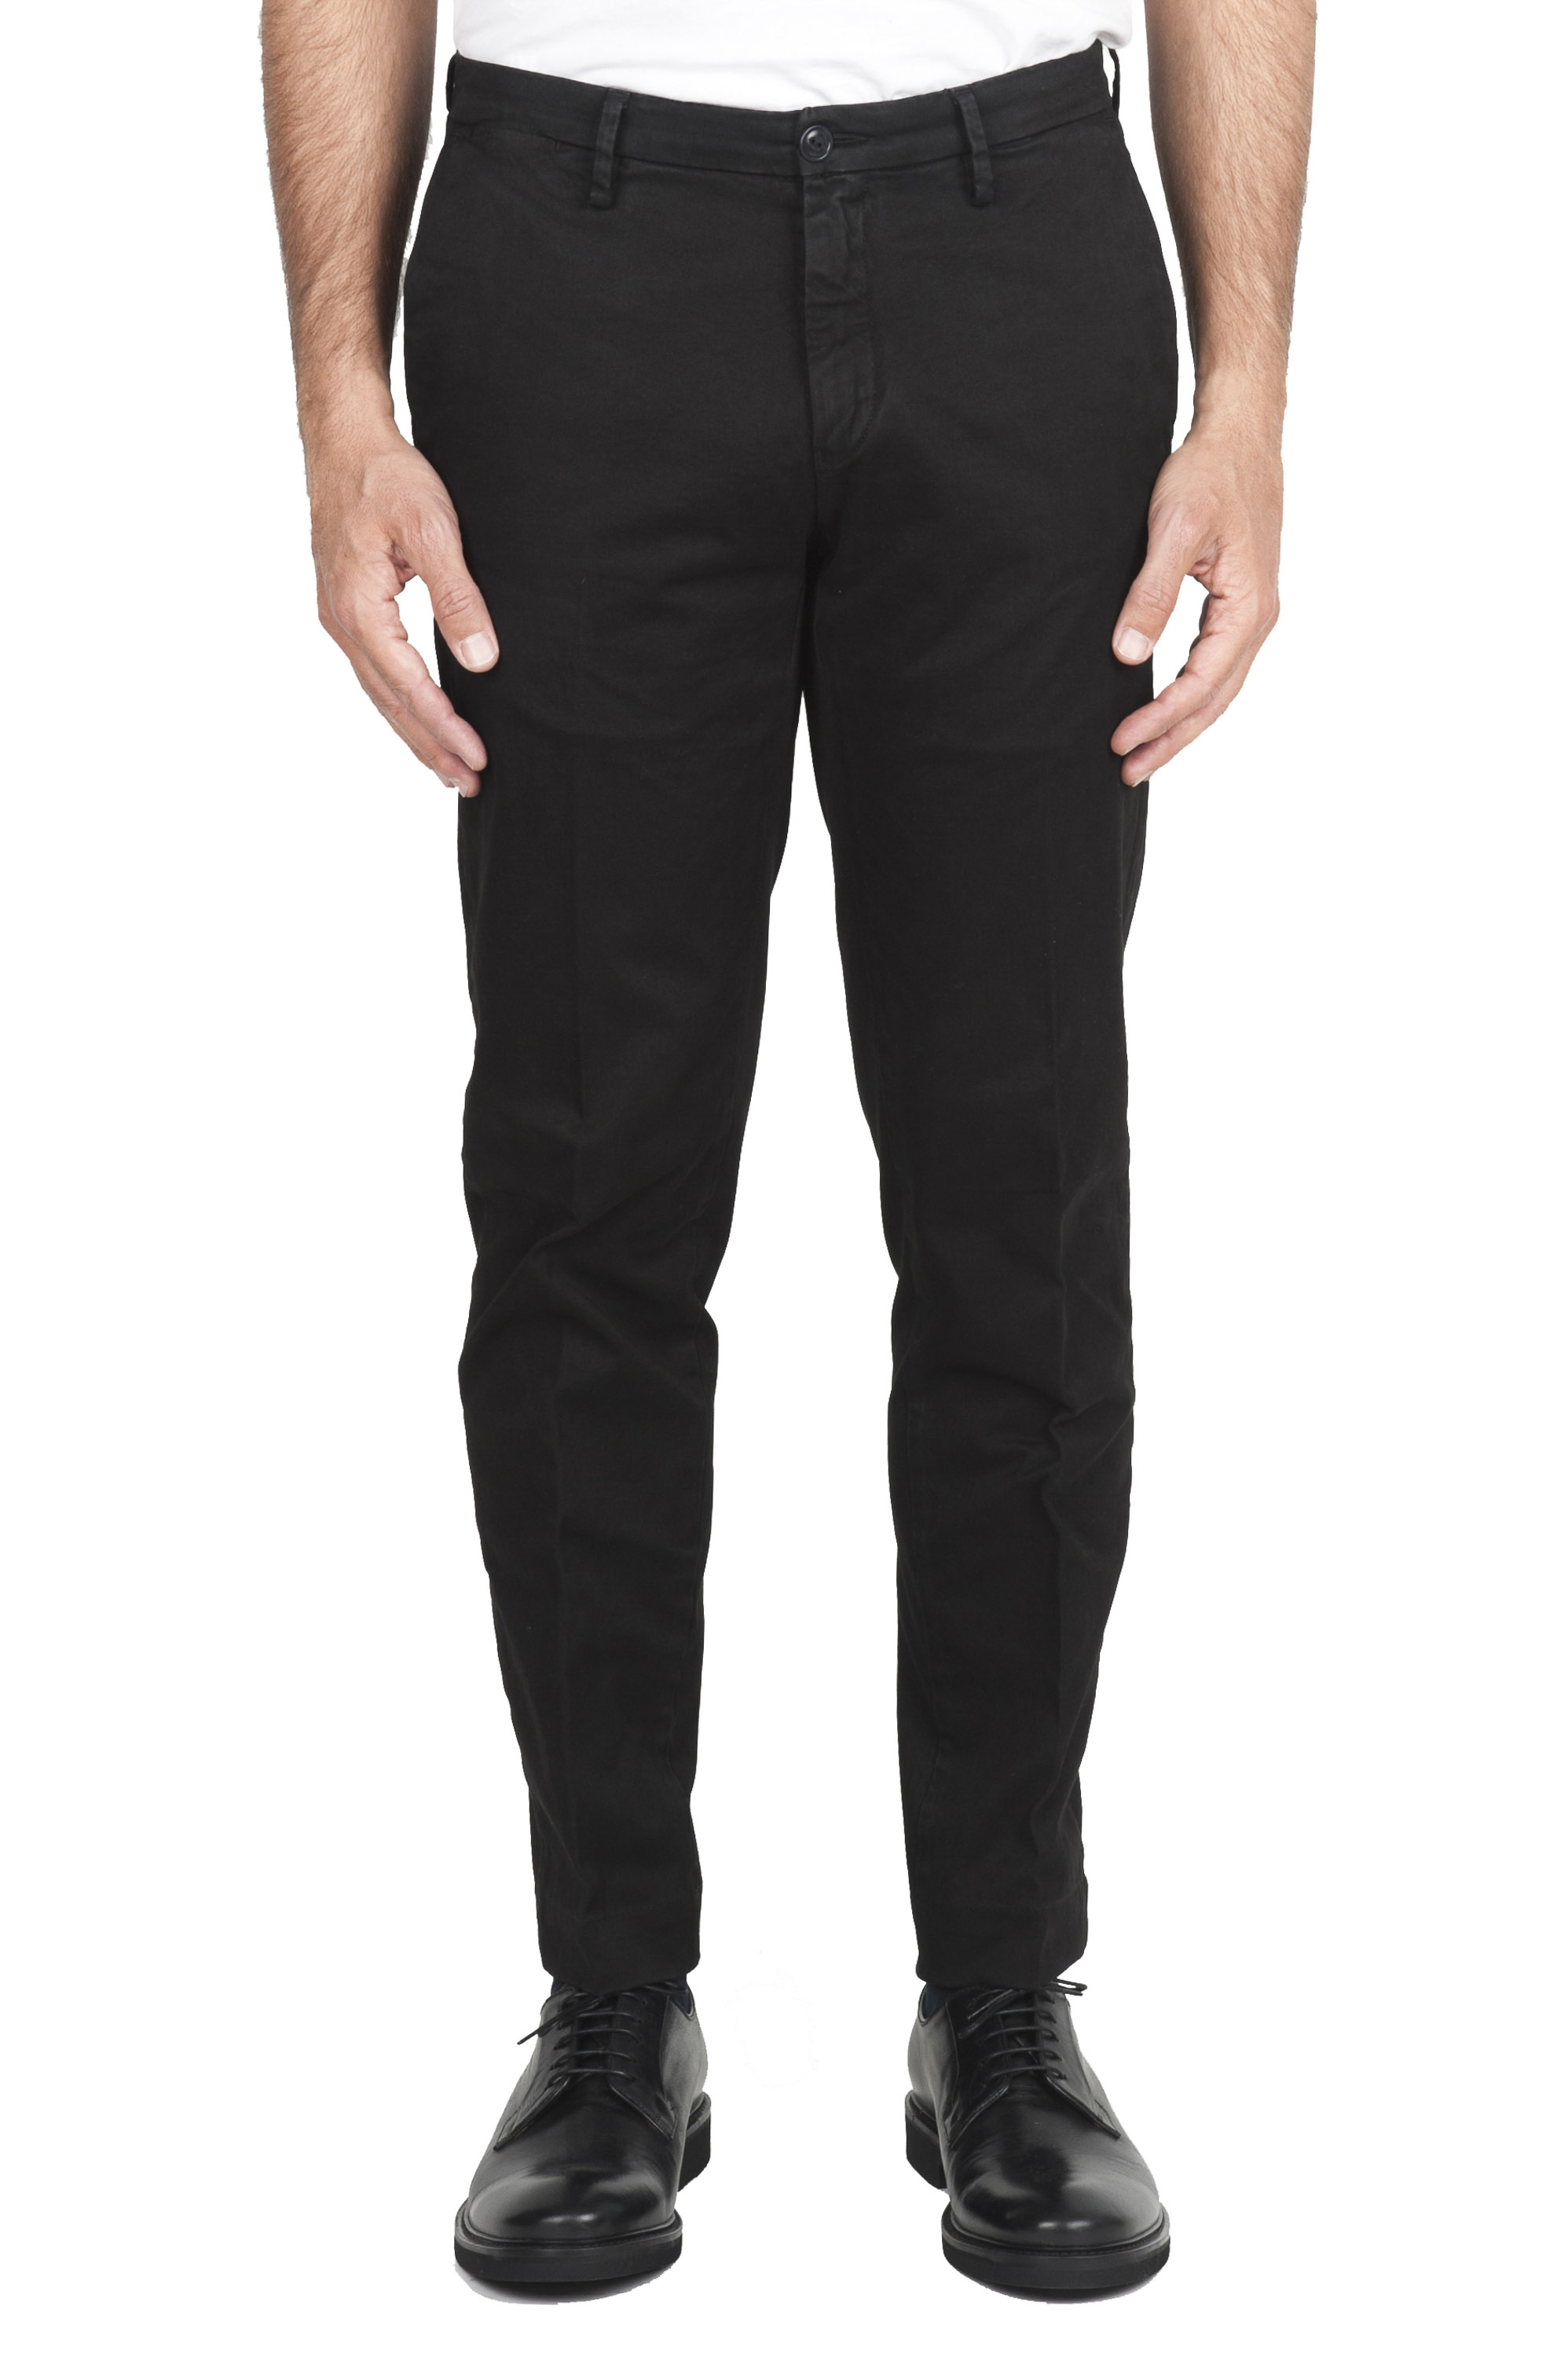 SBU 01537 Pantaloni chino classici in cotone stretch nero 01